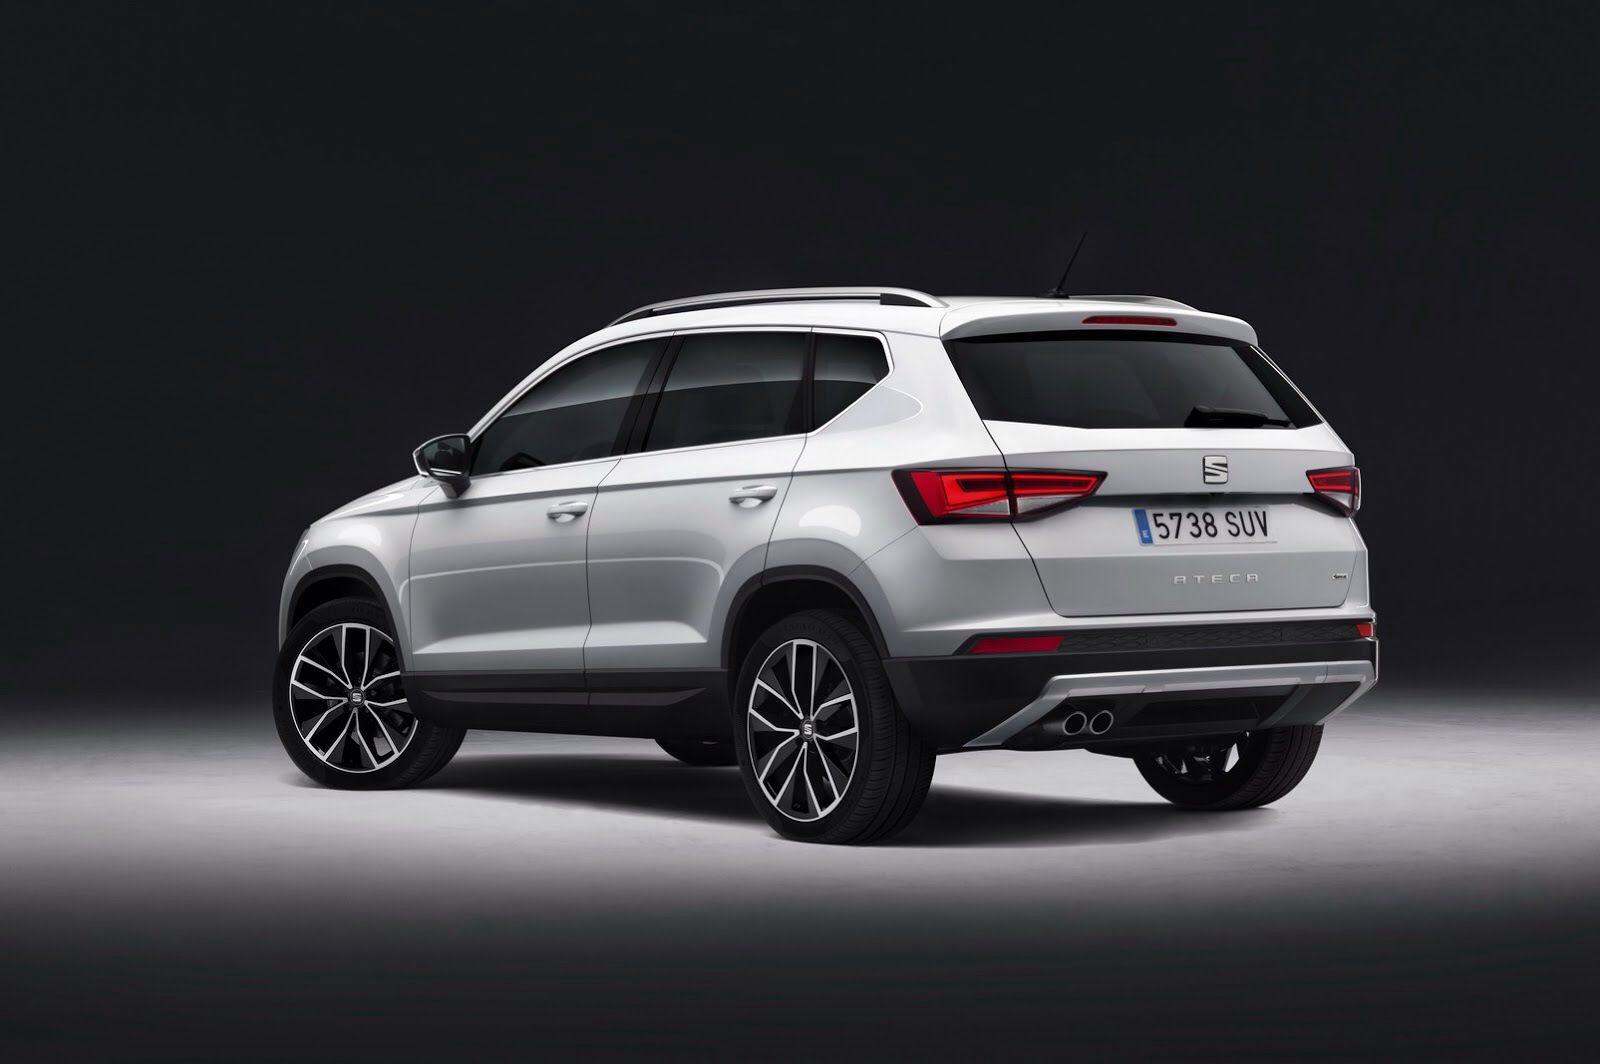 Seat Ateca Transportation Small Suv Suv Cars Best Small Suv